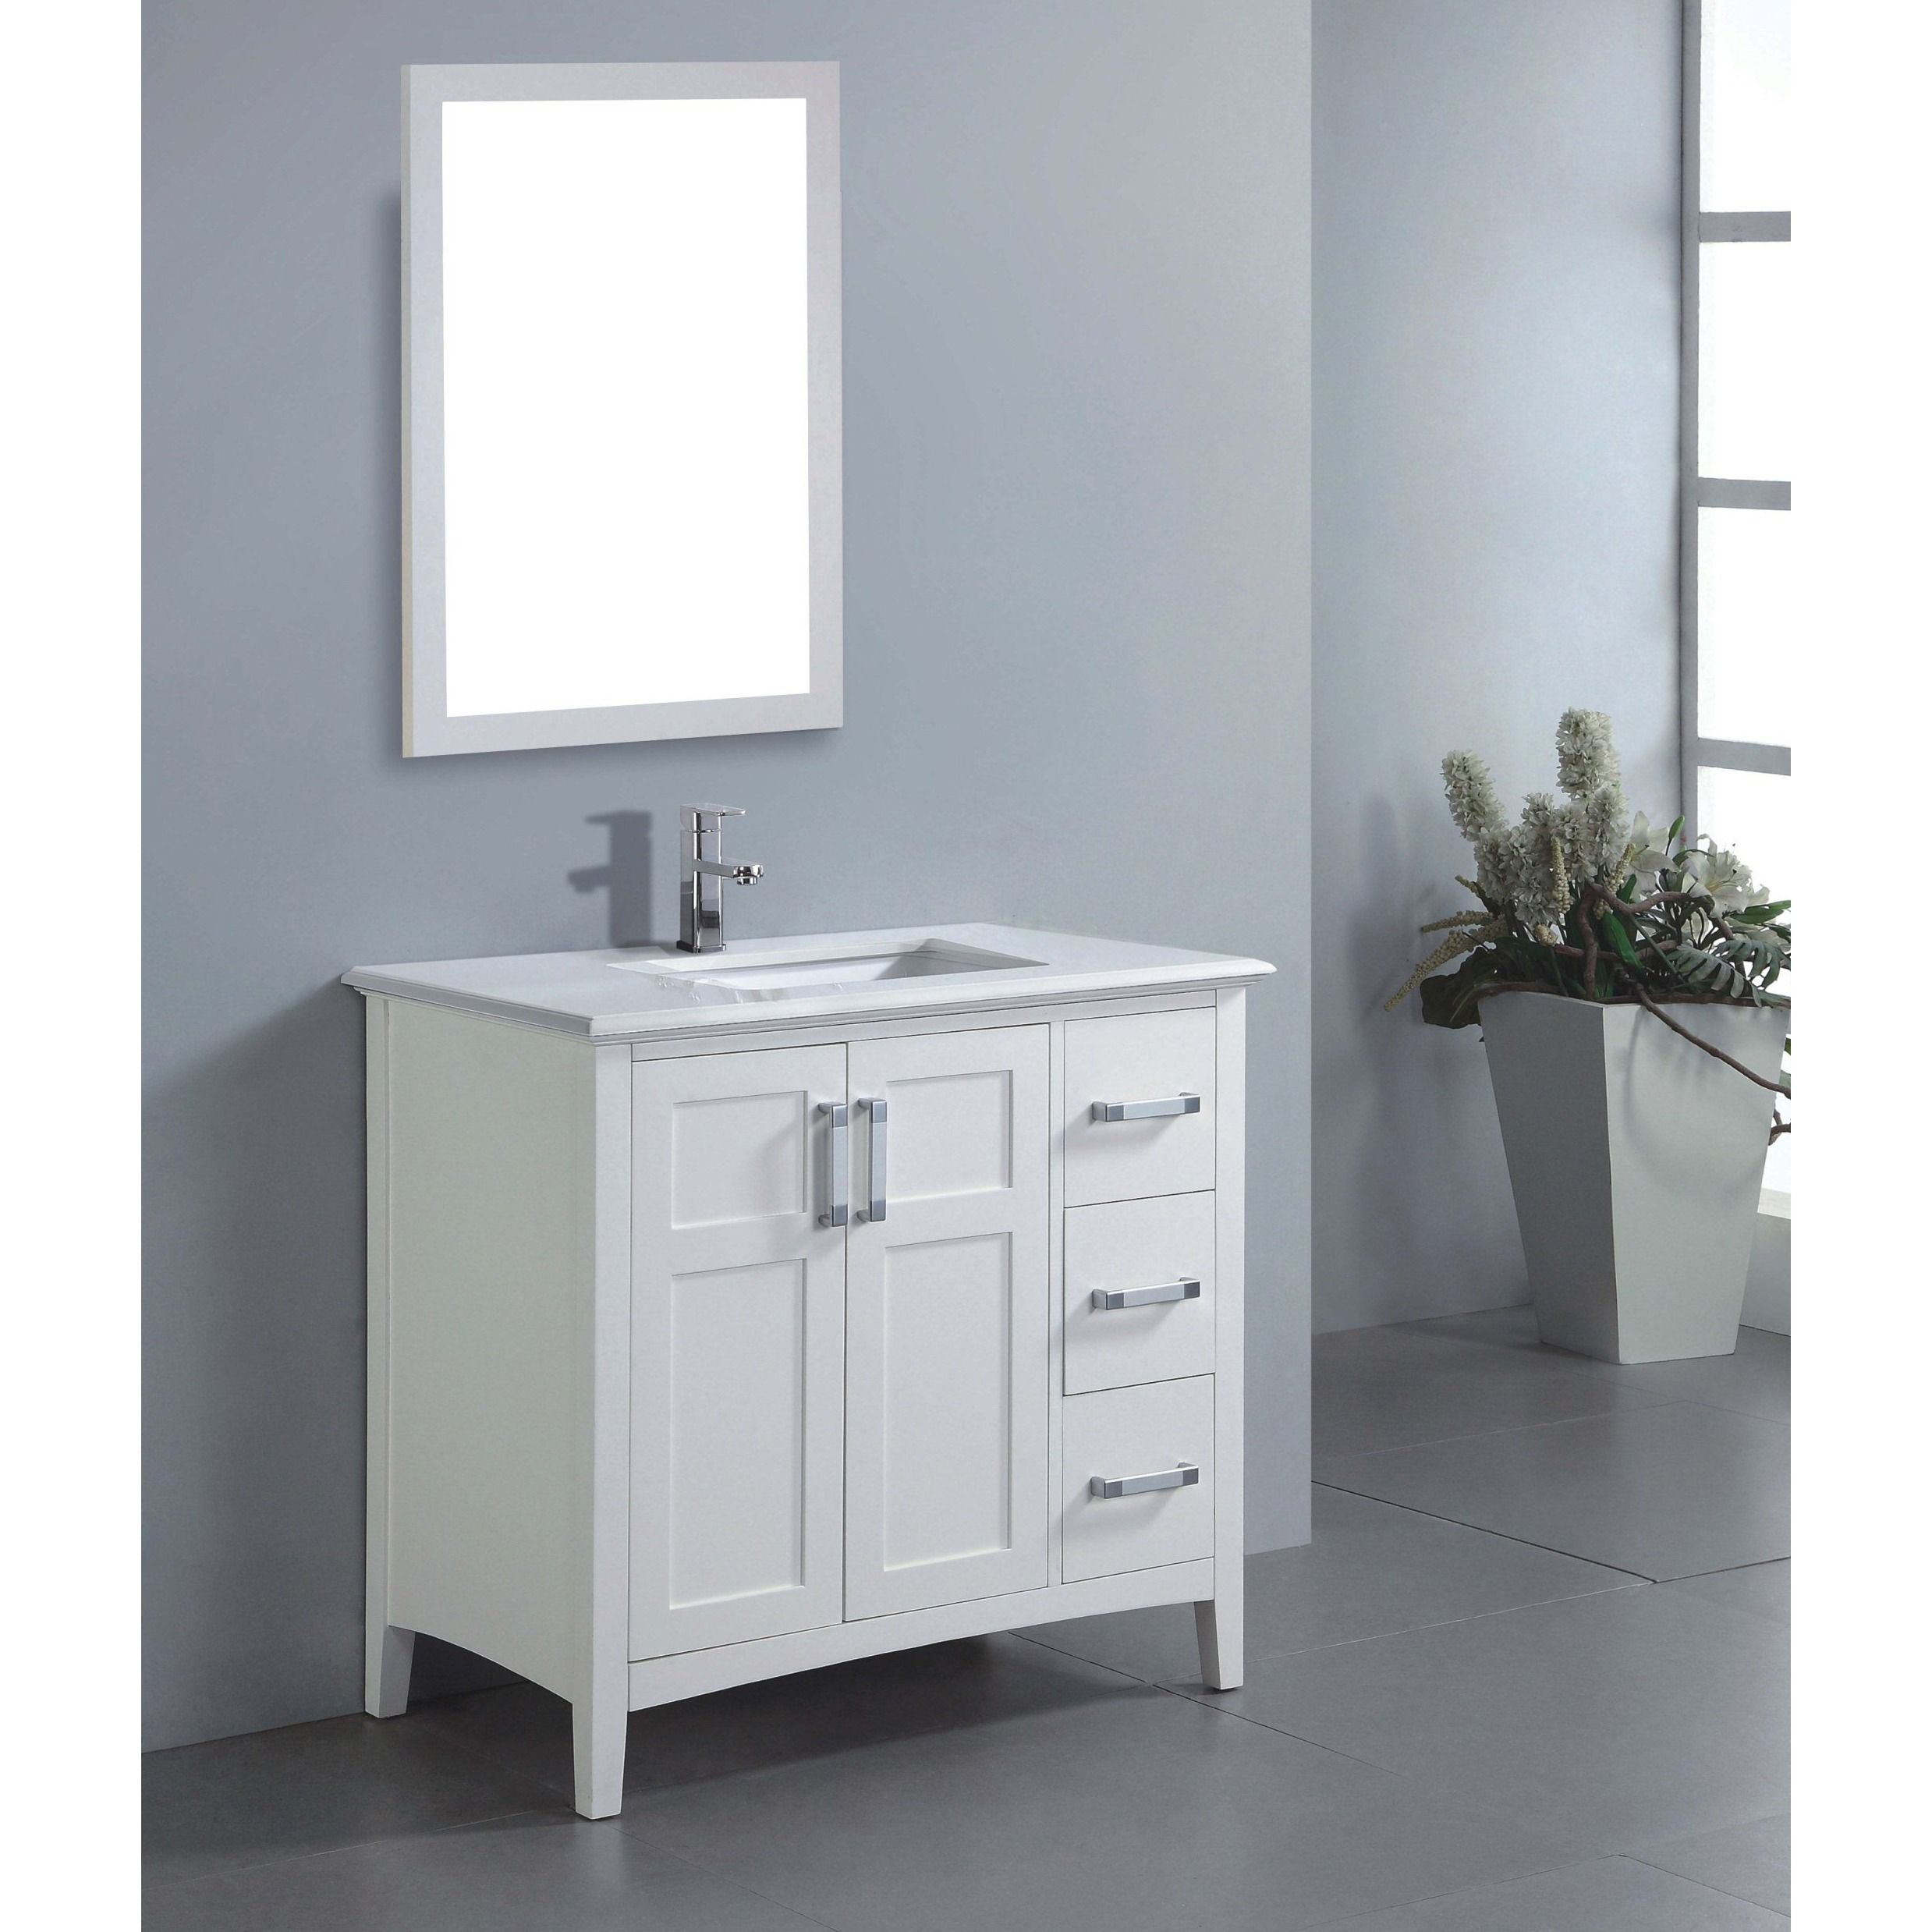 The 36 Inch Salem Vanity Is Defined By Its White Finish Chrome